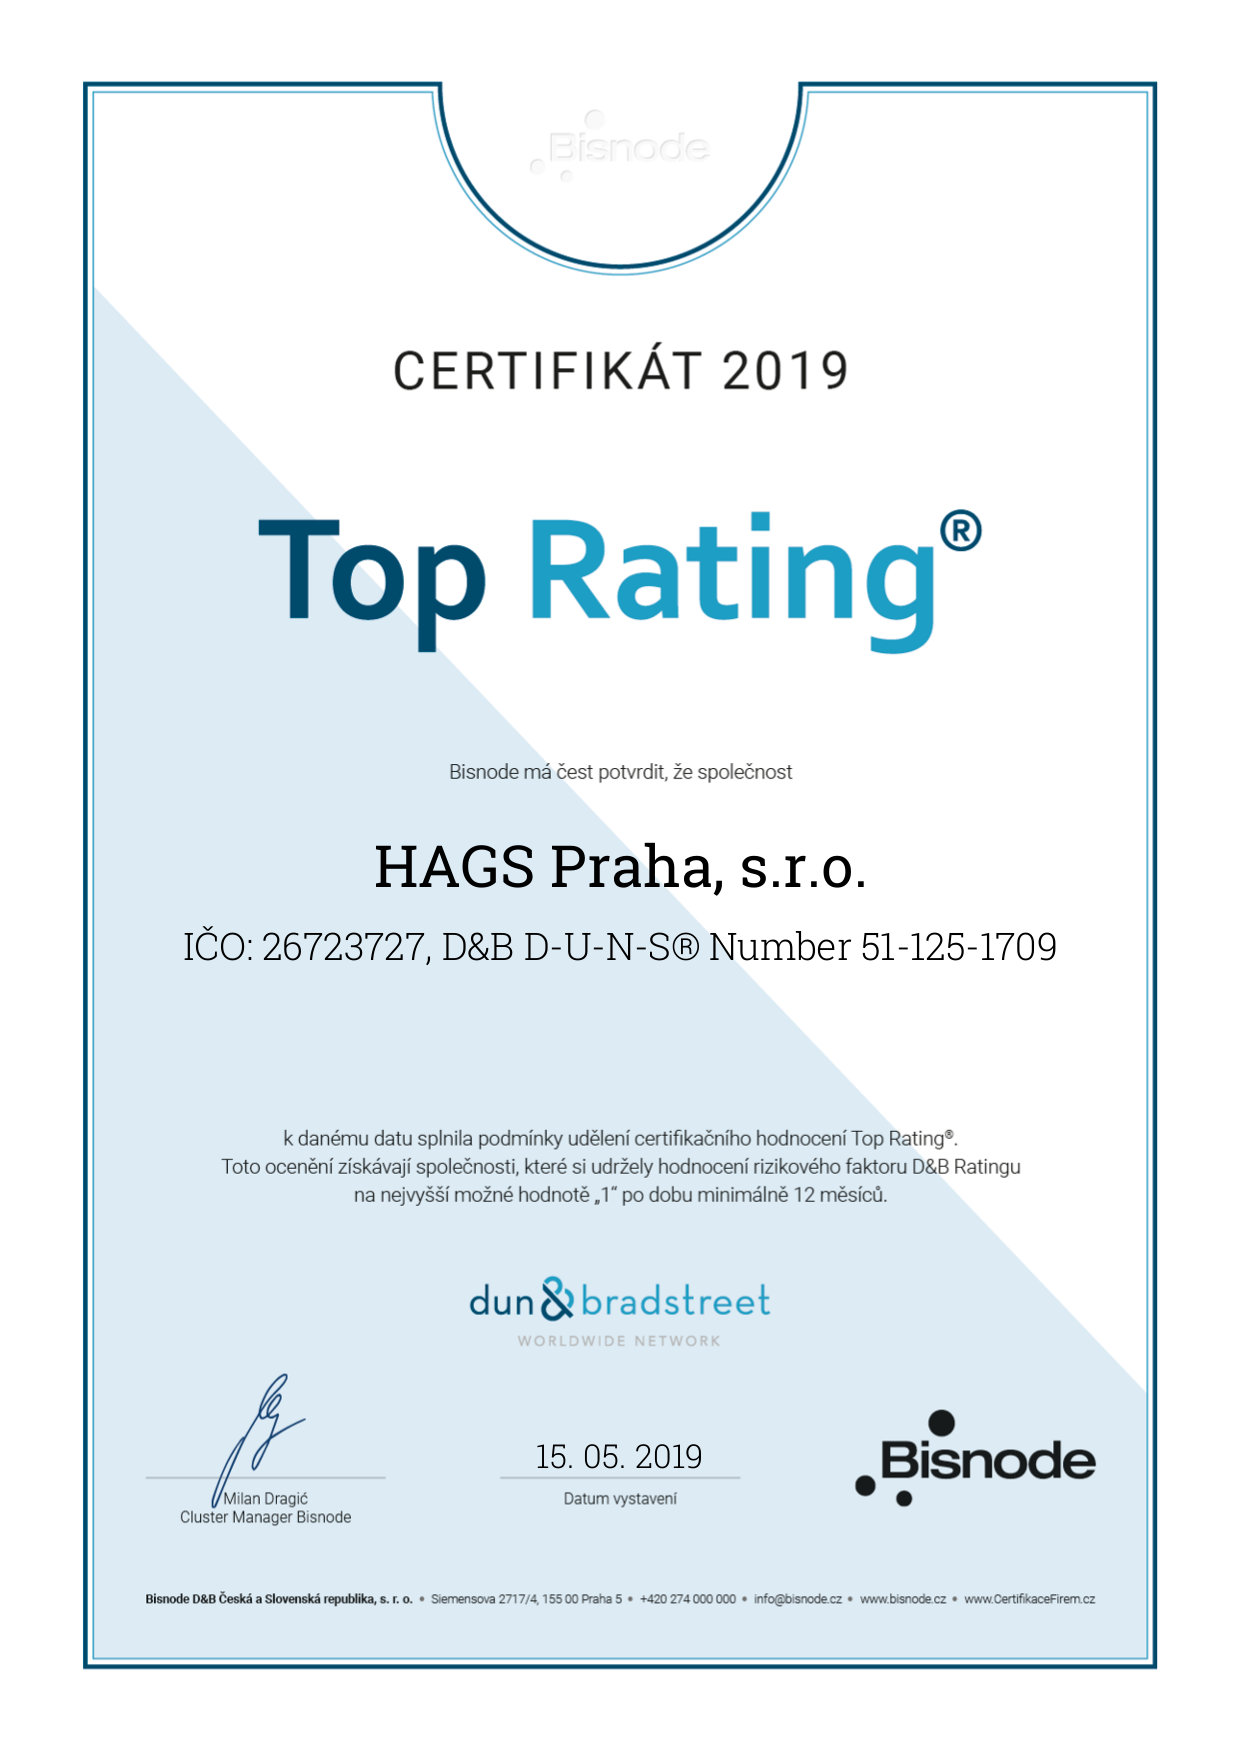 Certifikát Top Rating 2019